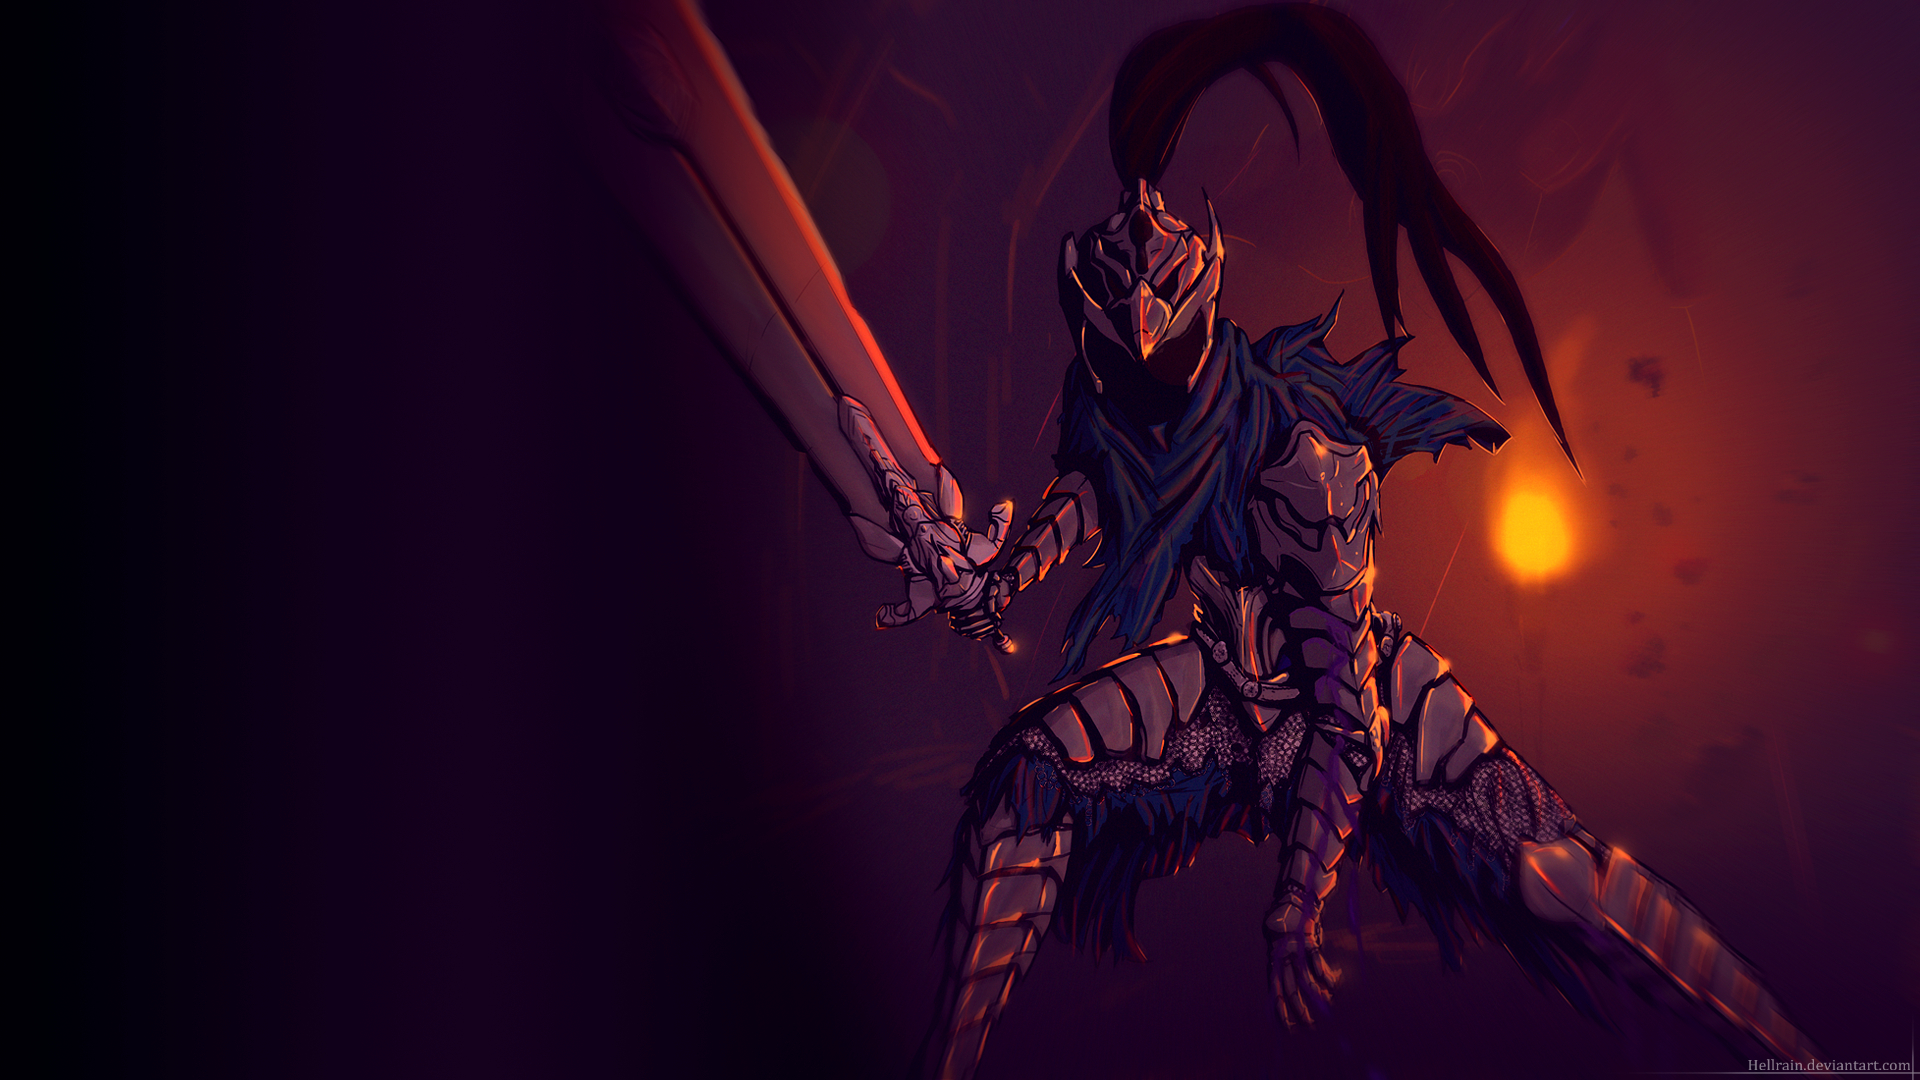 Wallpaper Artorias Of The Abyss 1920x1080 By Hellrain On Deviantart